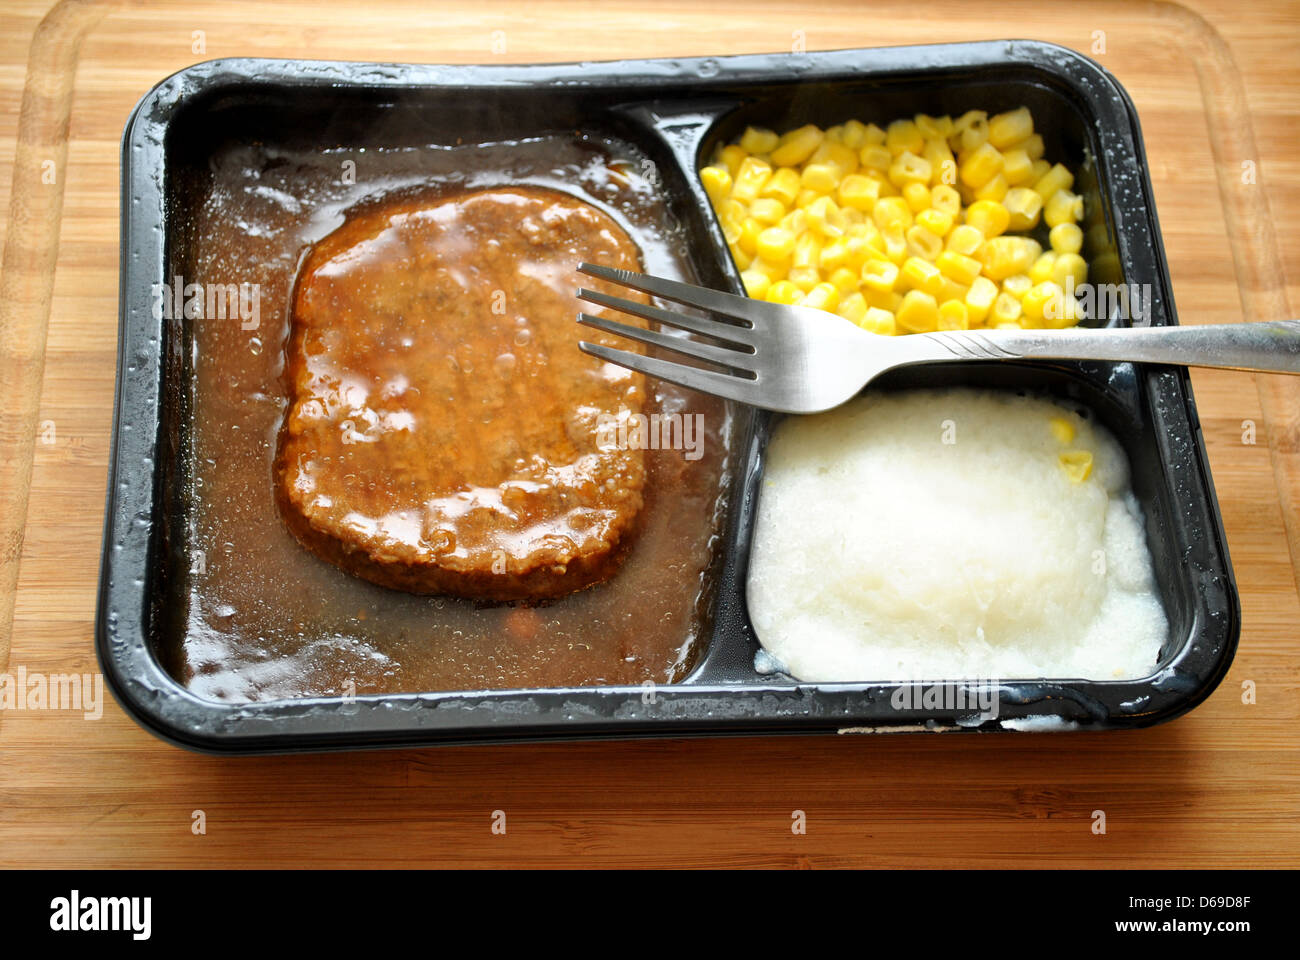 Salisbury Steak TV Dinner with a Fork - Stock Image